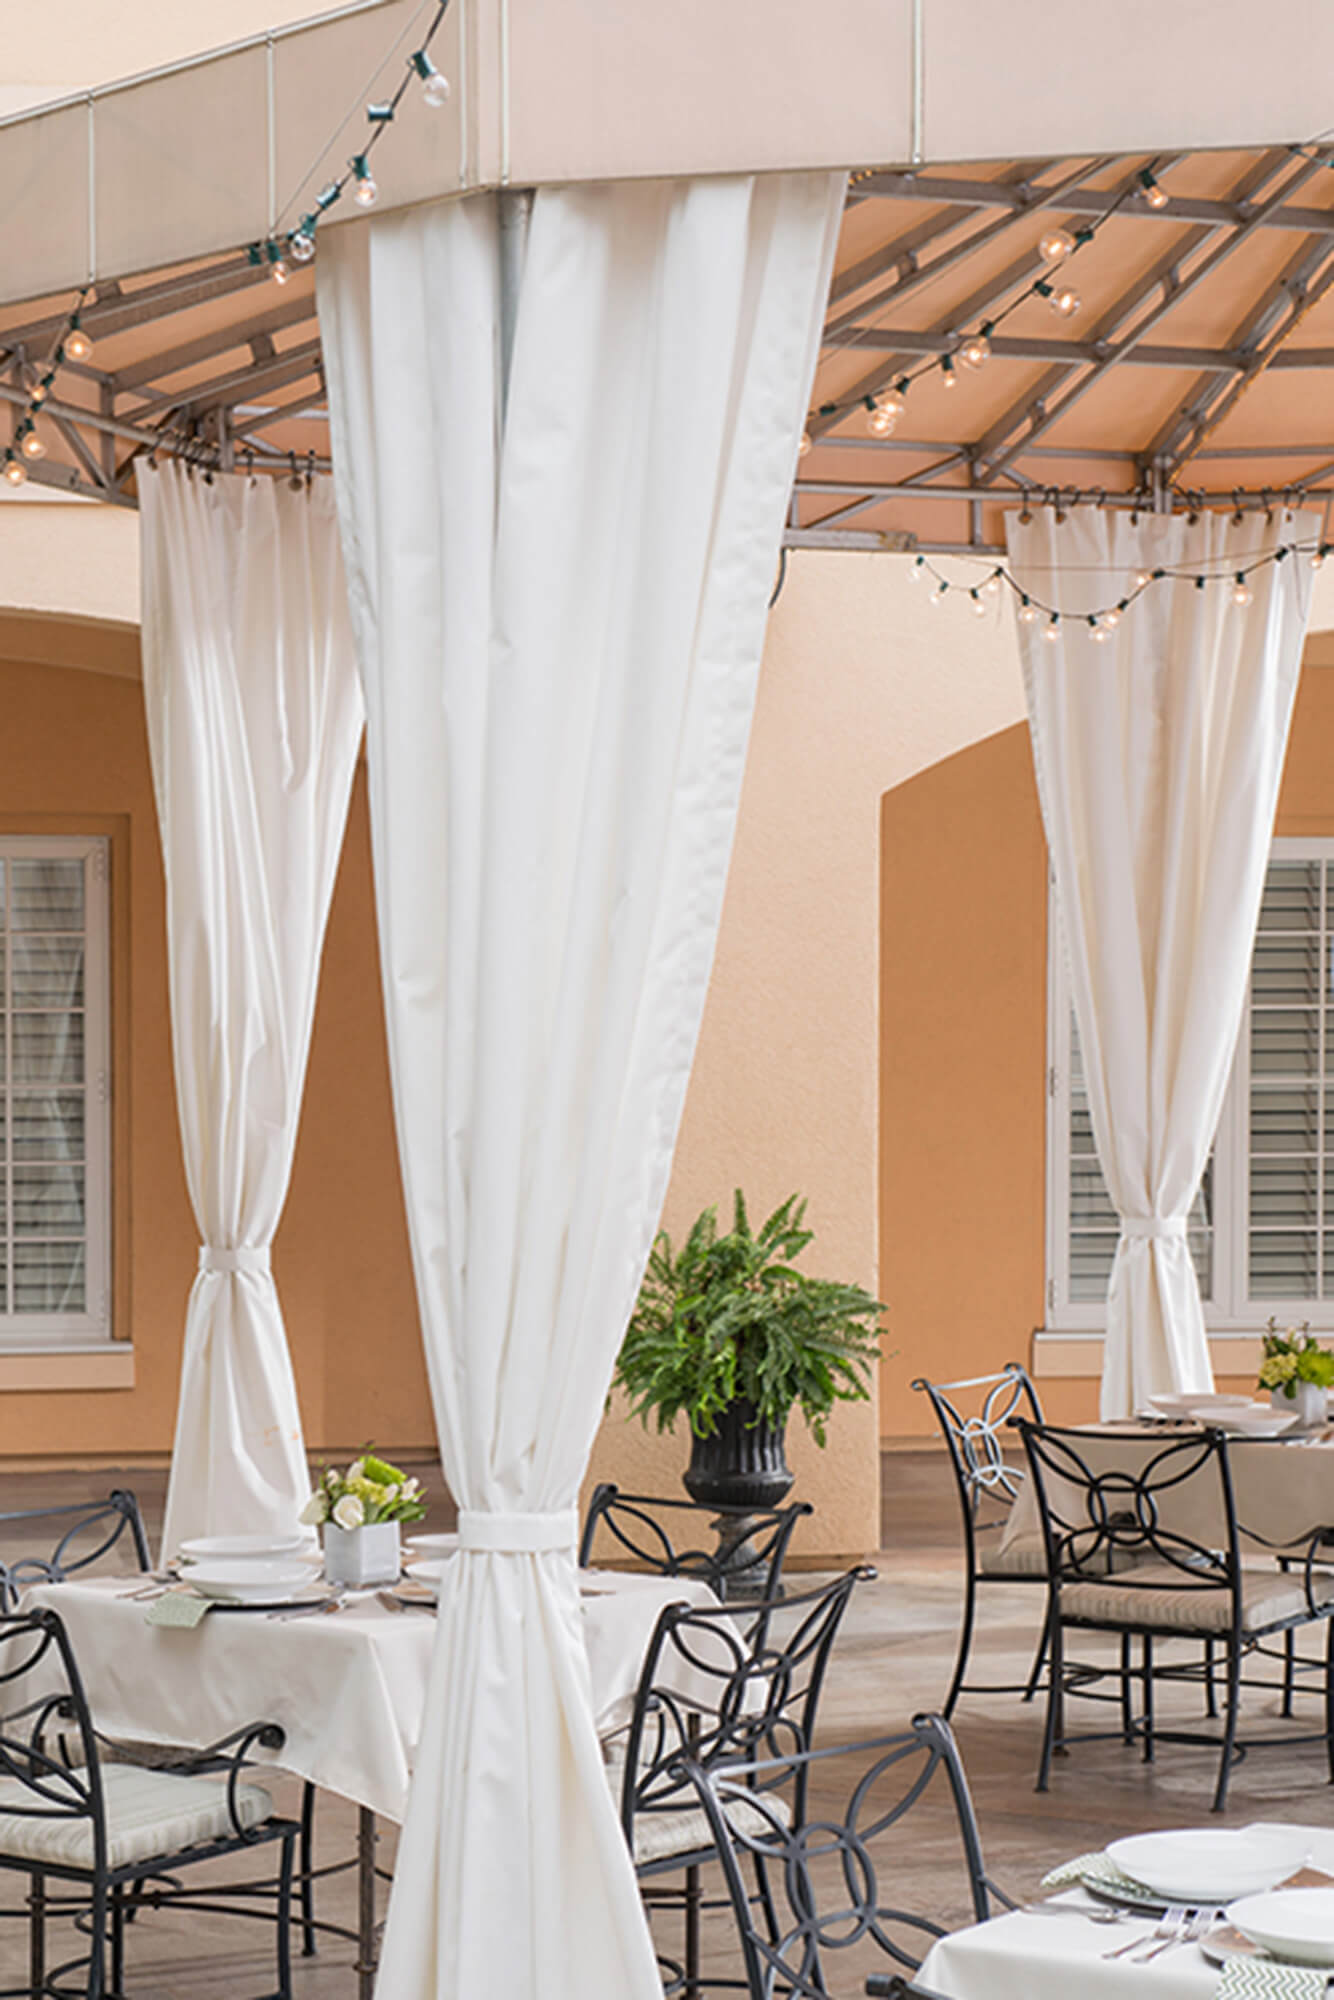 A restaurant patio is shaded by a fixed frame awning made using beige Sunbrella Clarity fabric.